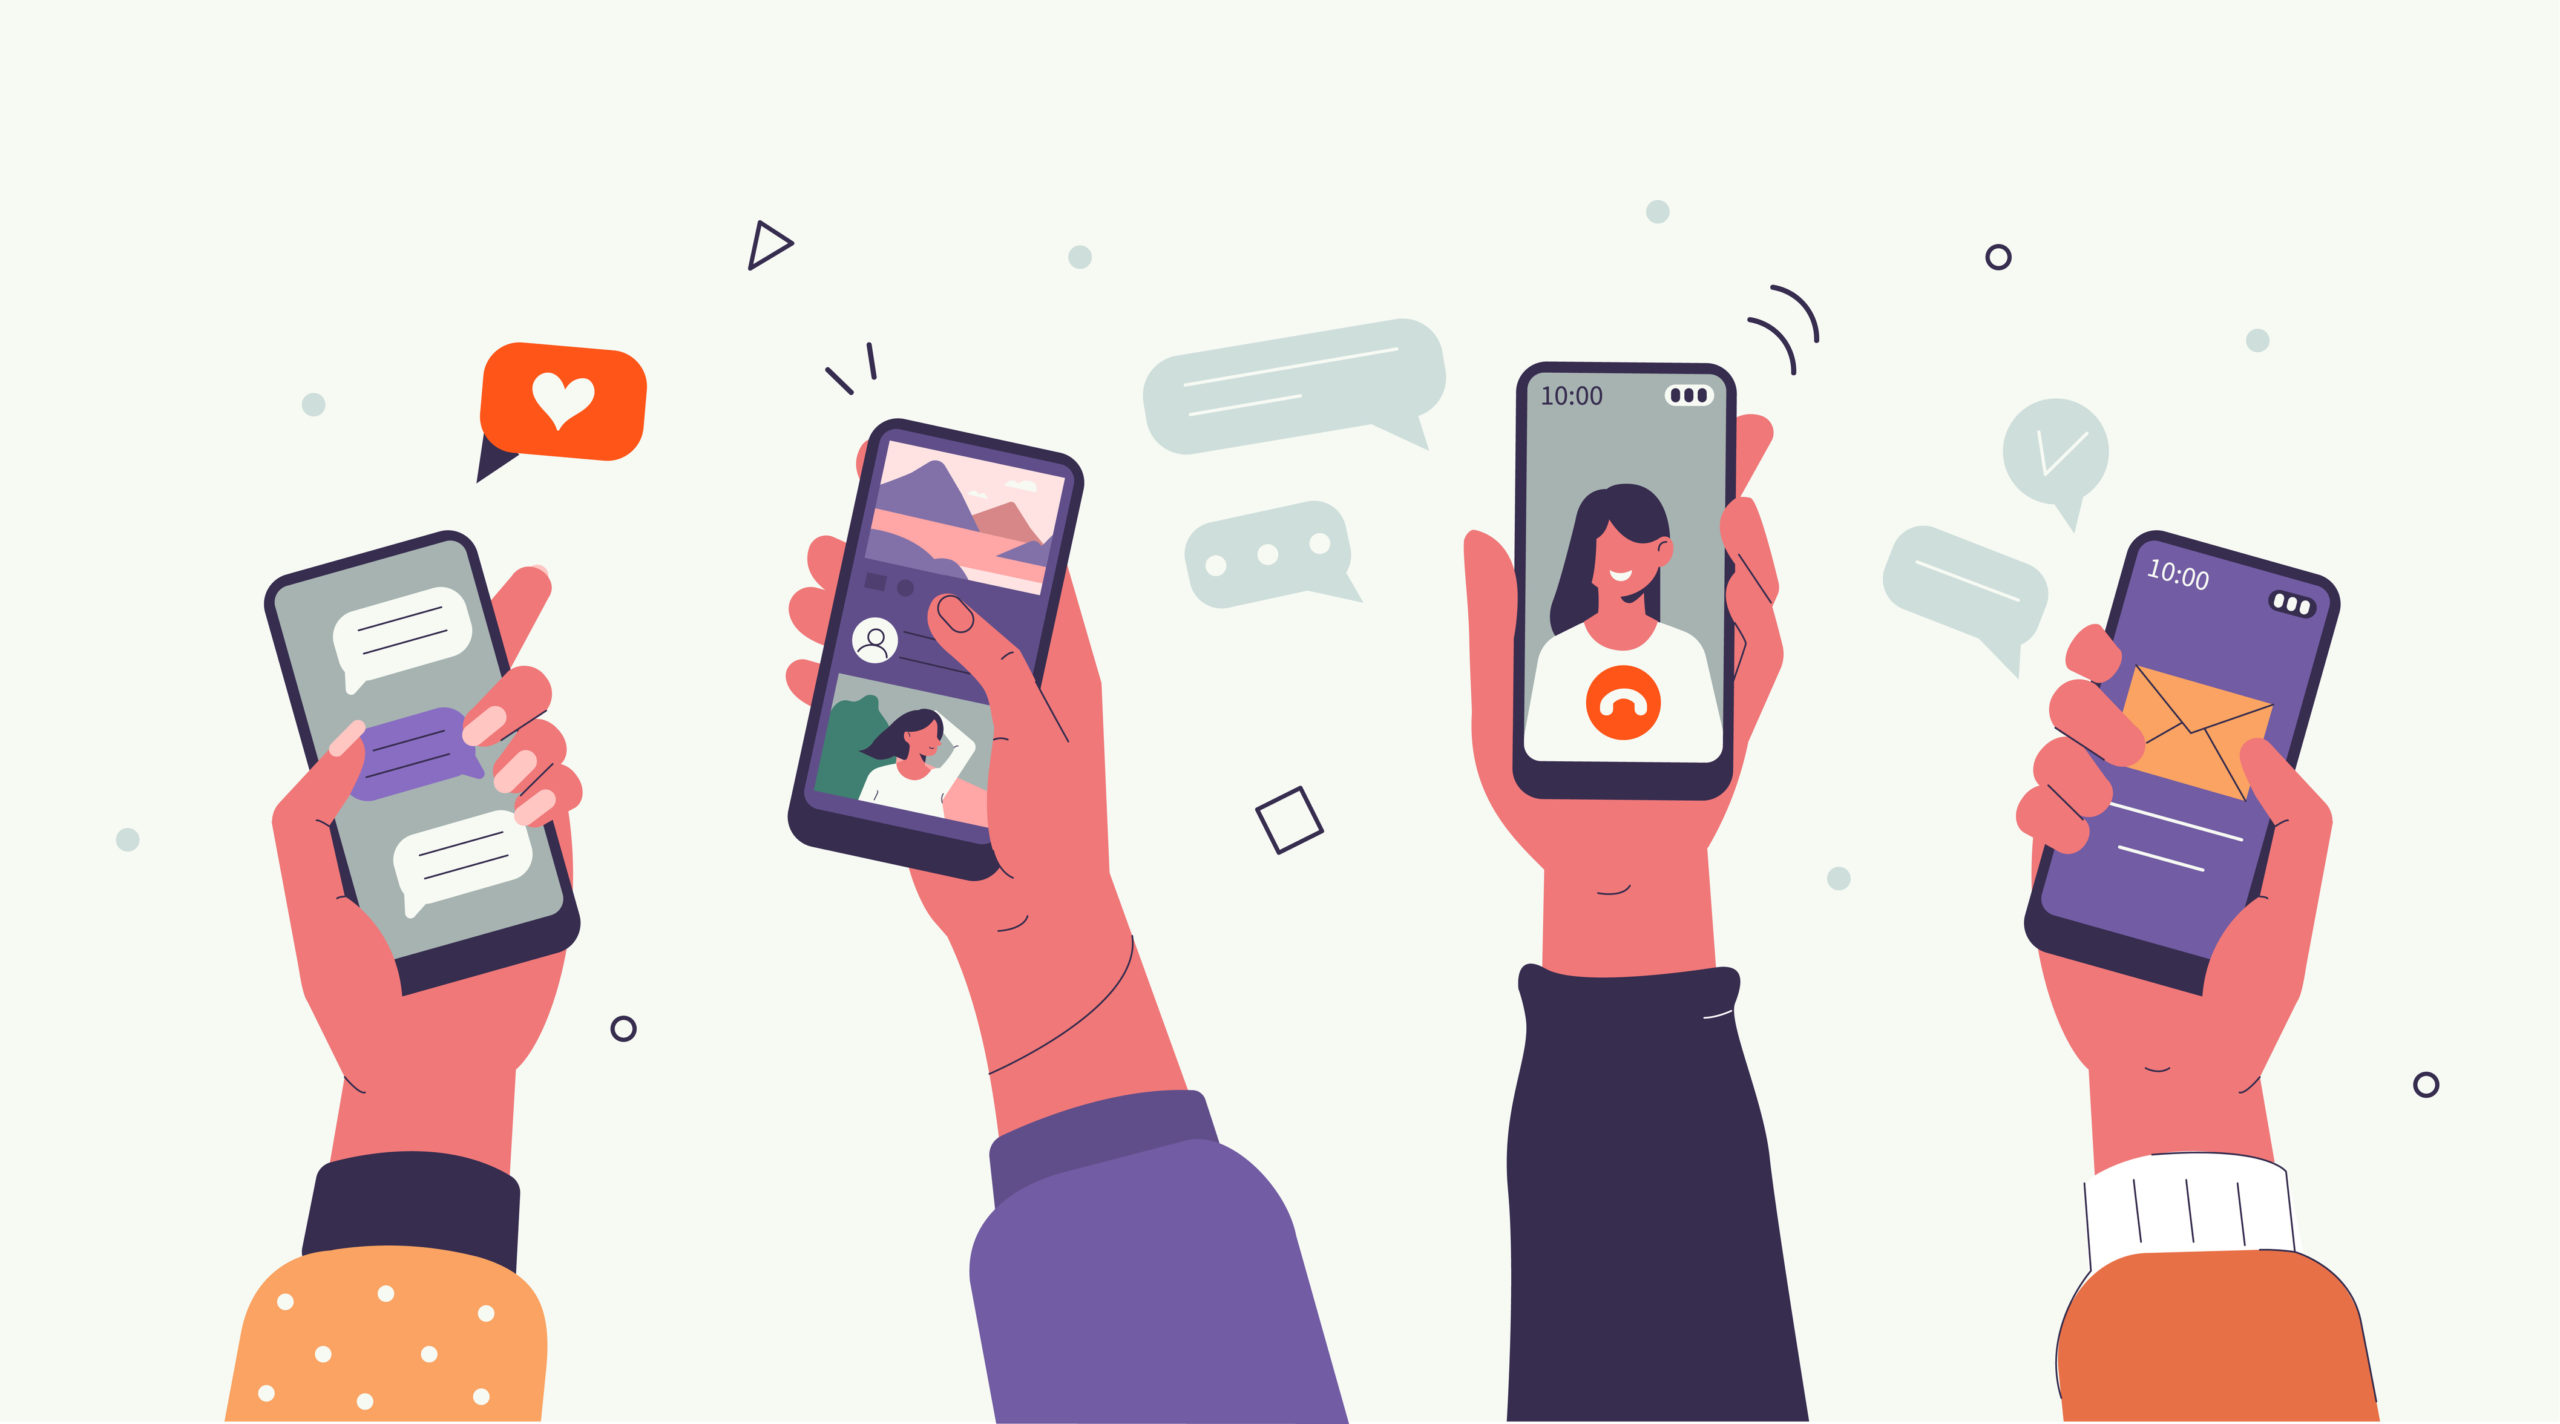 four cartoon hands and forearms holding up phones using social media and apps